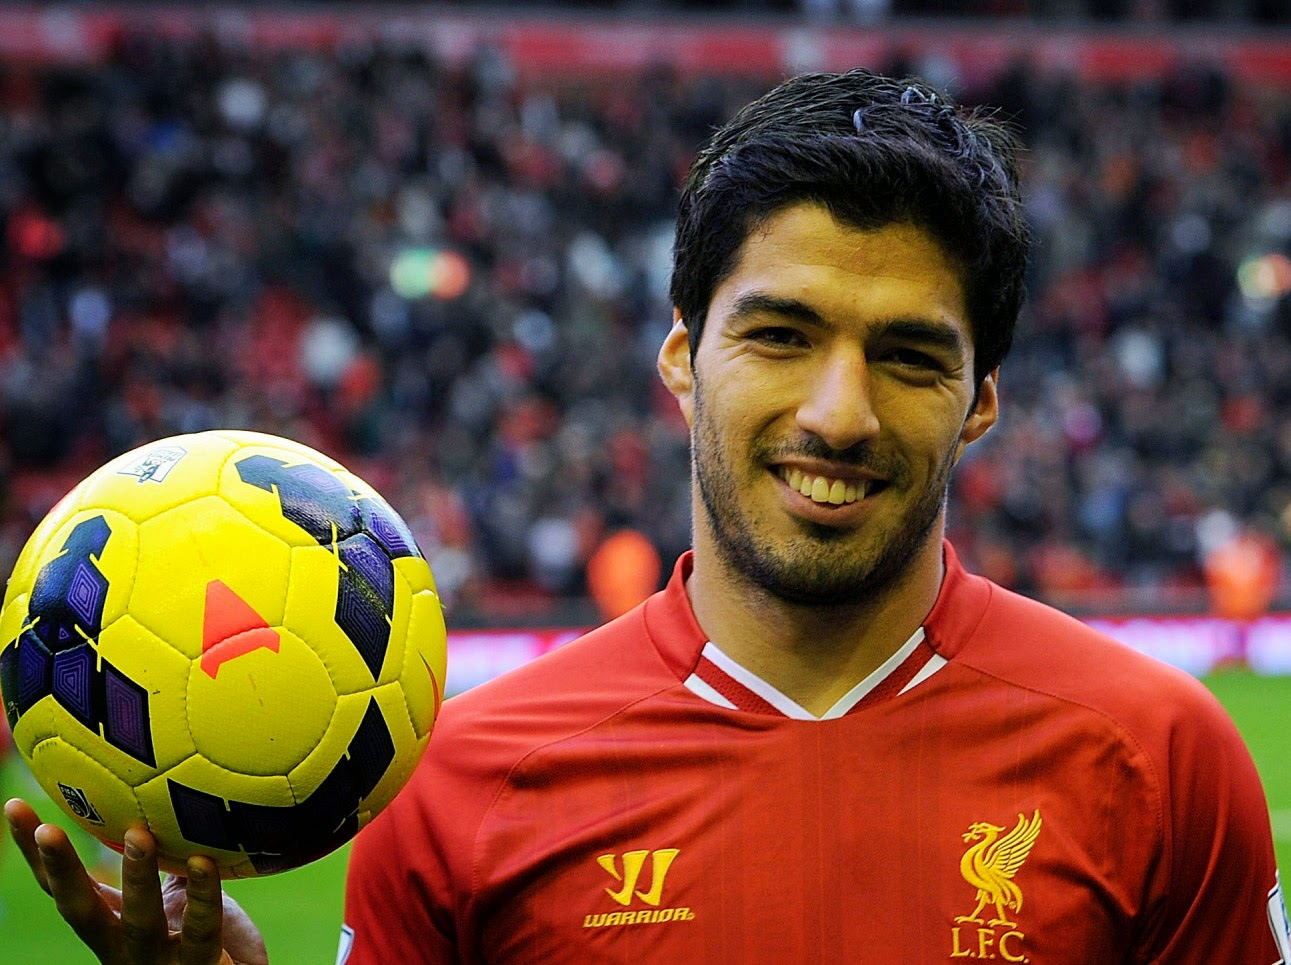 Free Luis Suarez Football Soccer Player Hd Background Mobile Desktop Download Images